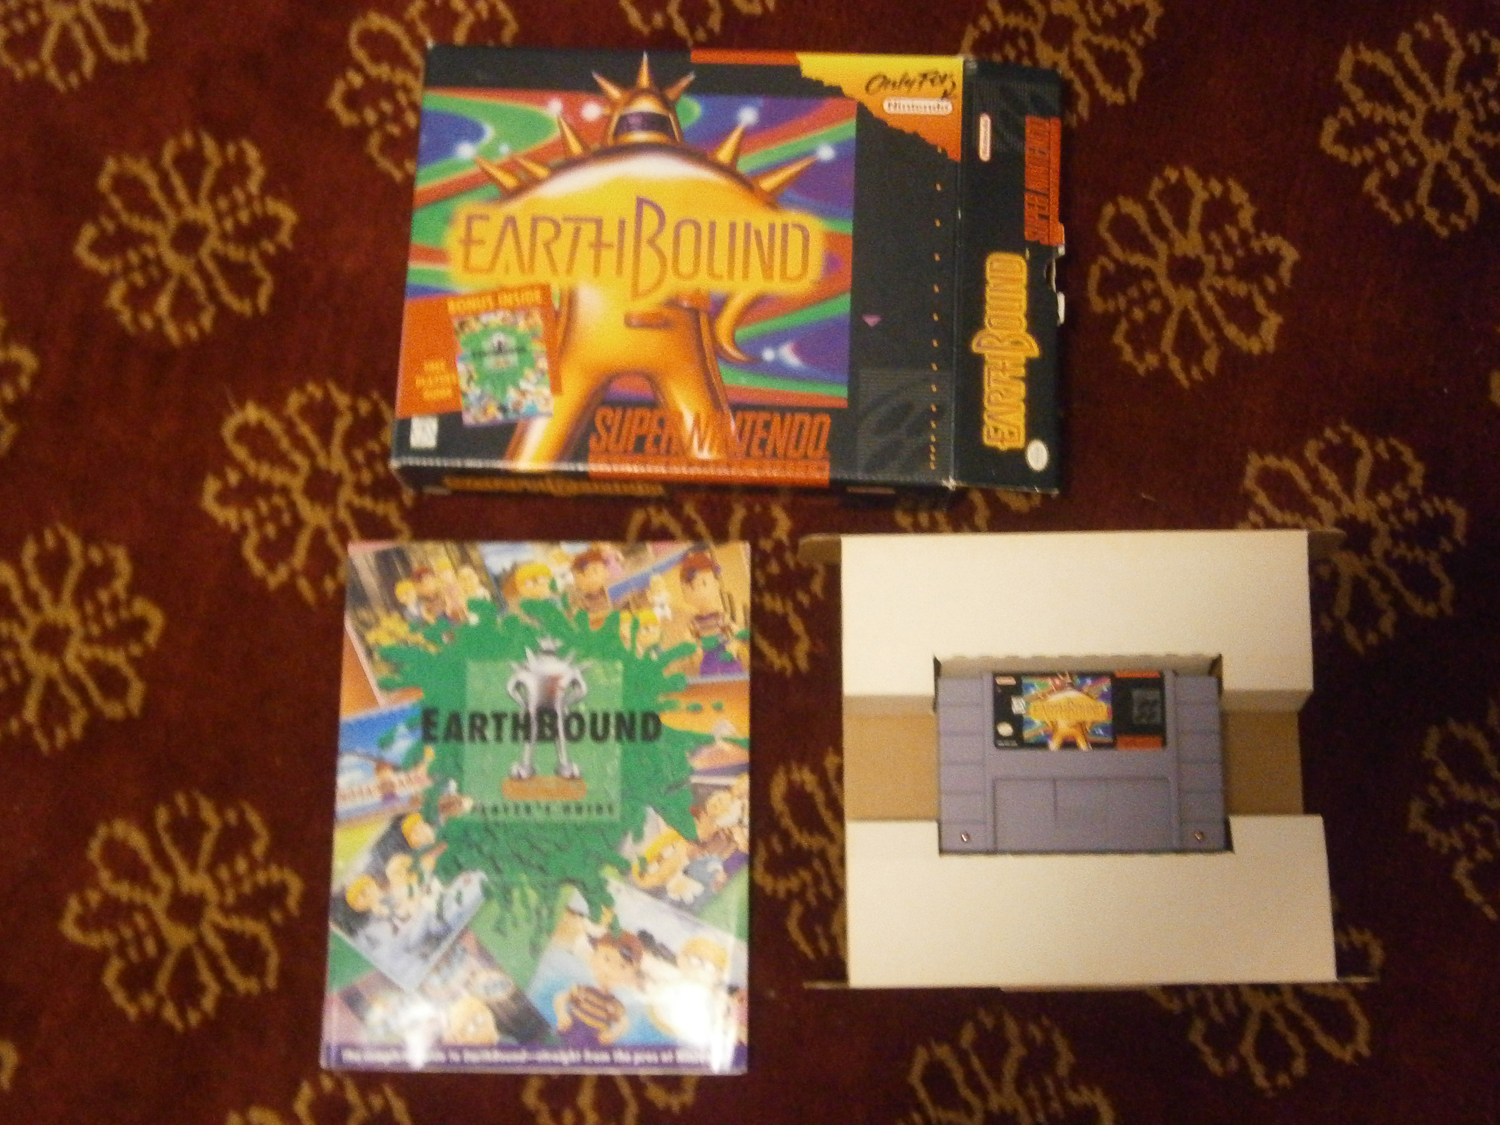 FS SNES Earthbound Big Box Version COMPLETE - Buy, Sell, and